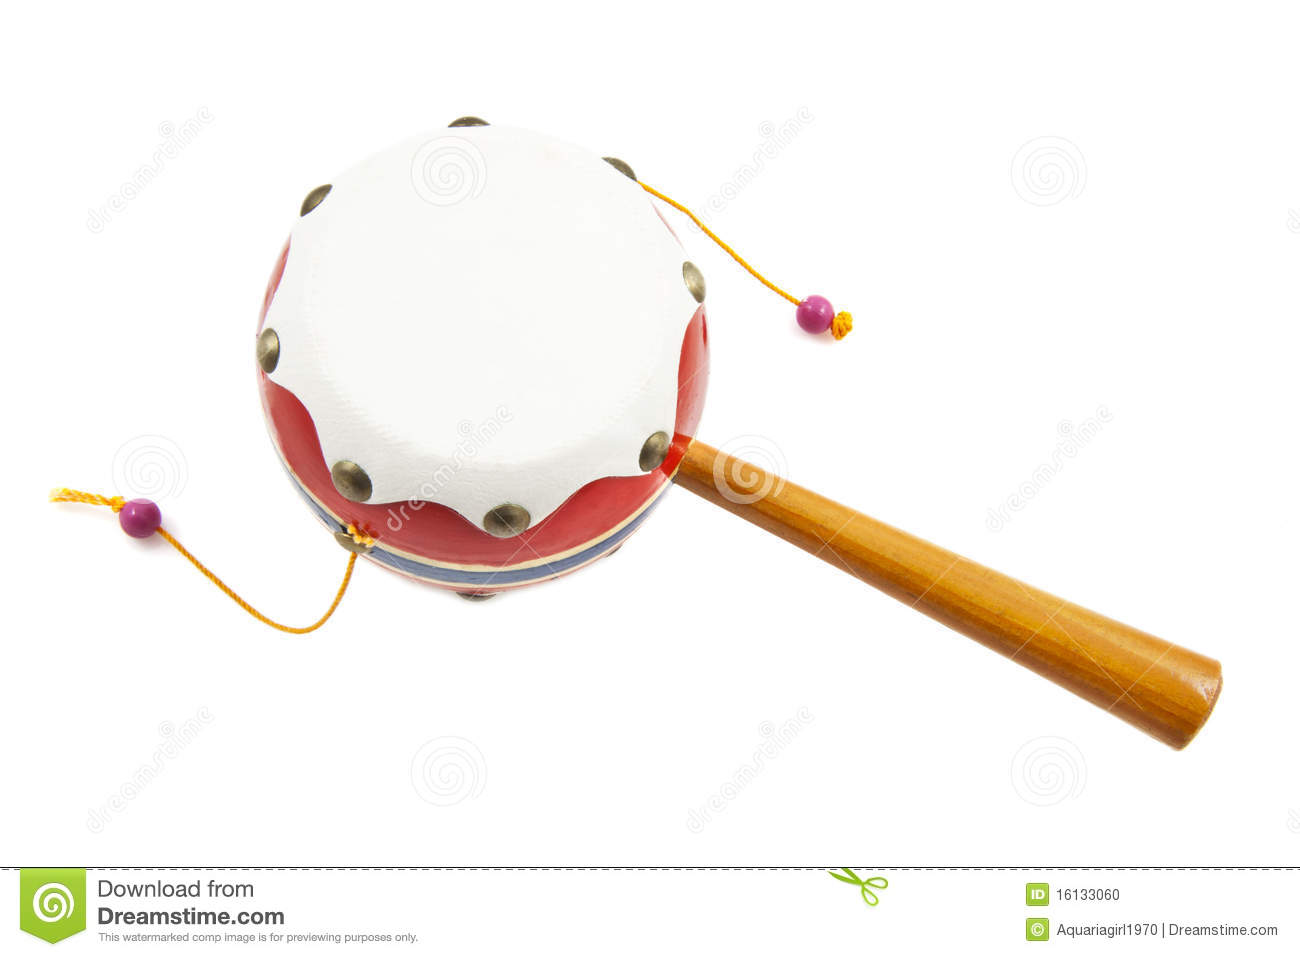 Little Percussion Musical Instrument Stock Photo - Image: 16133060